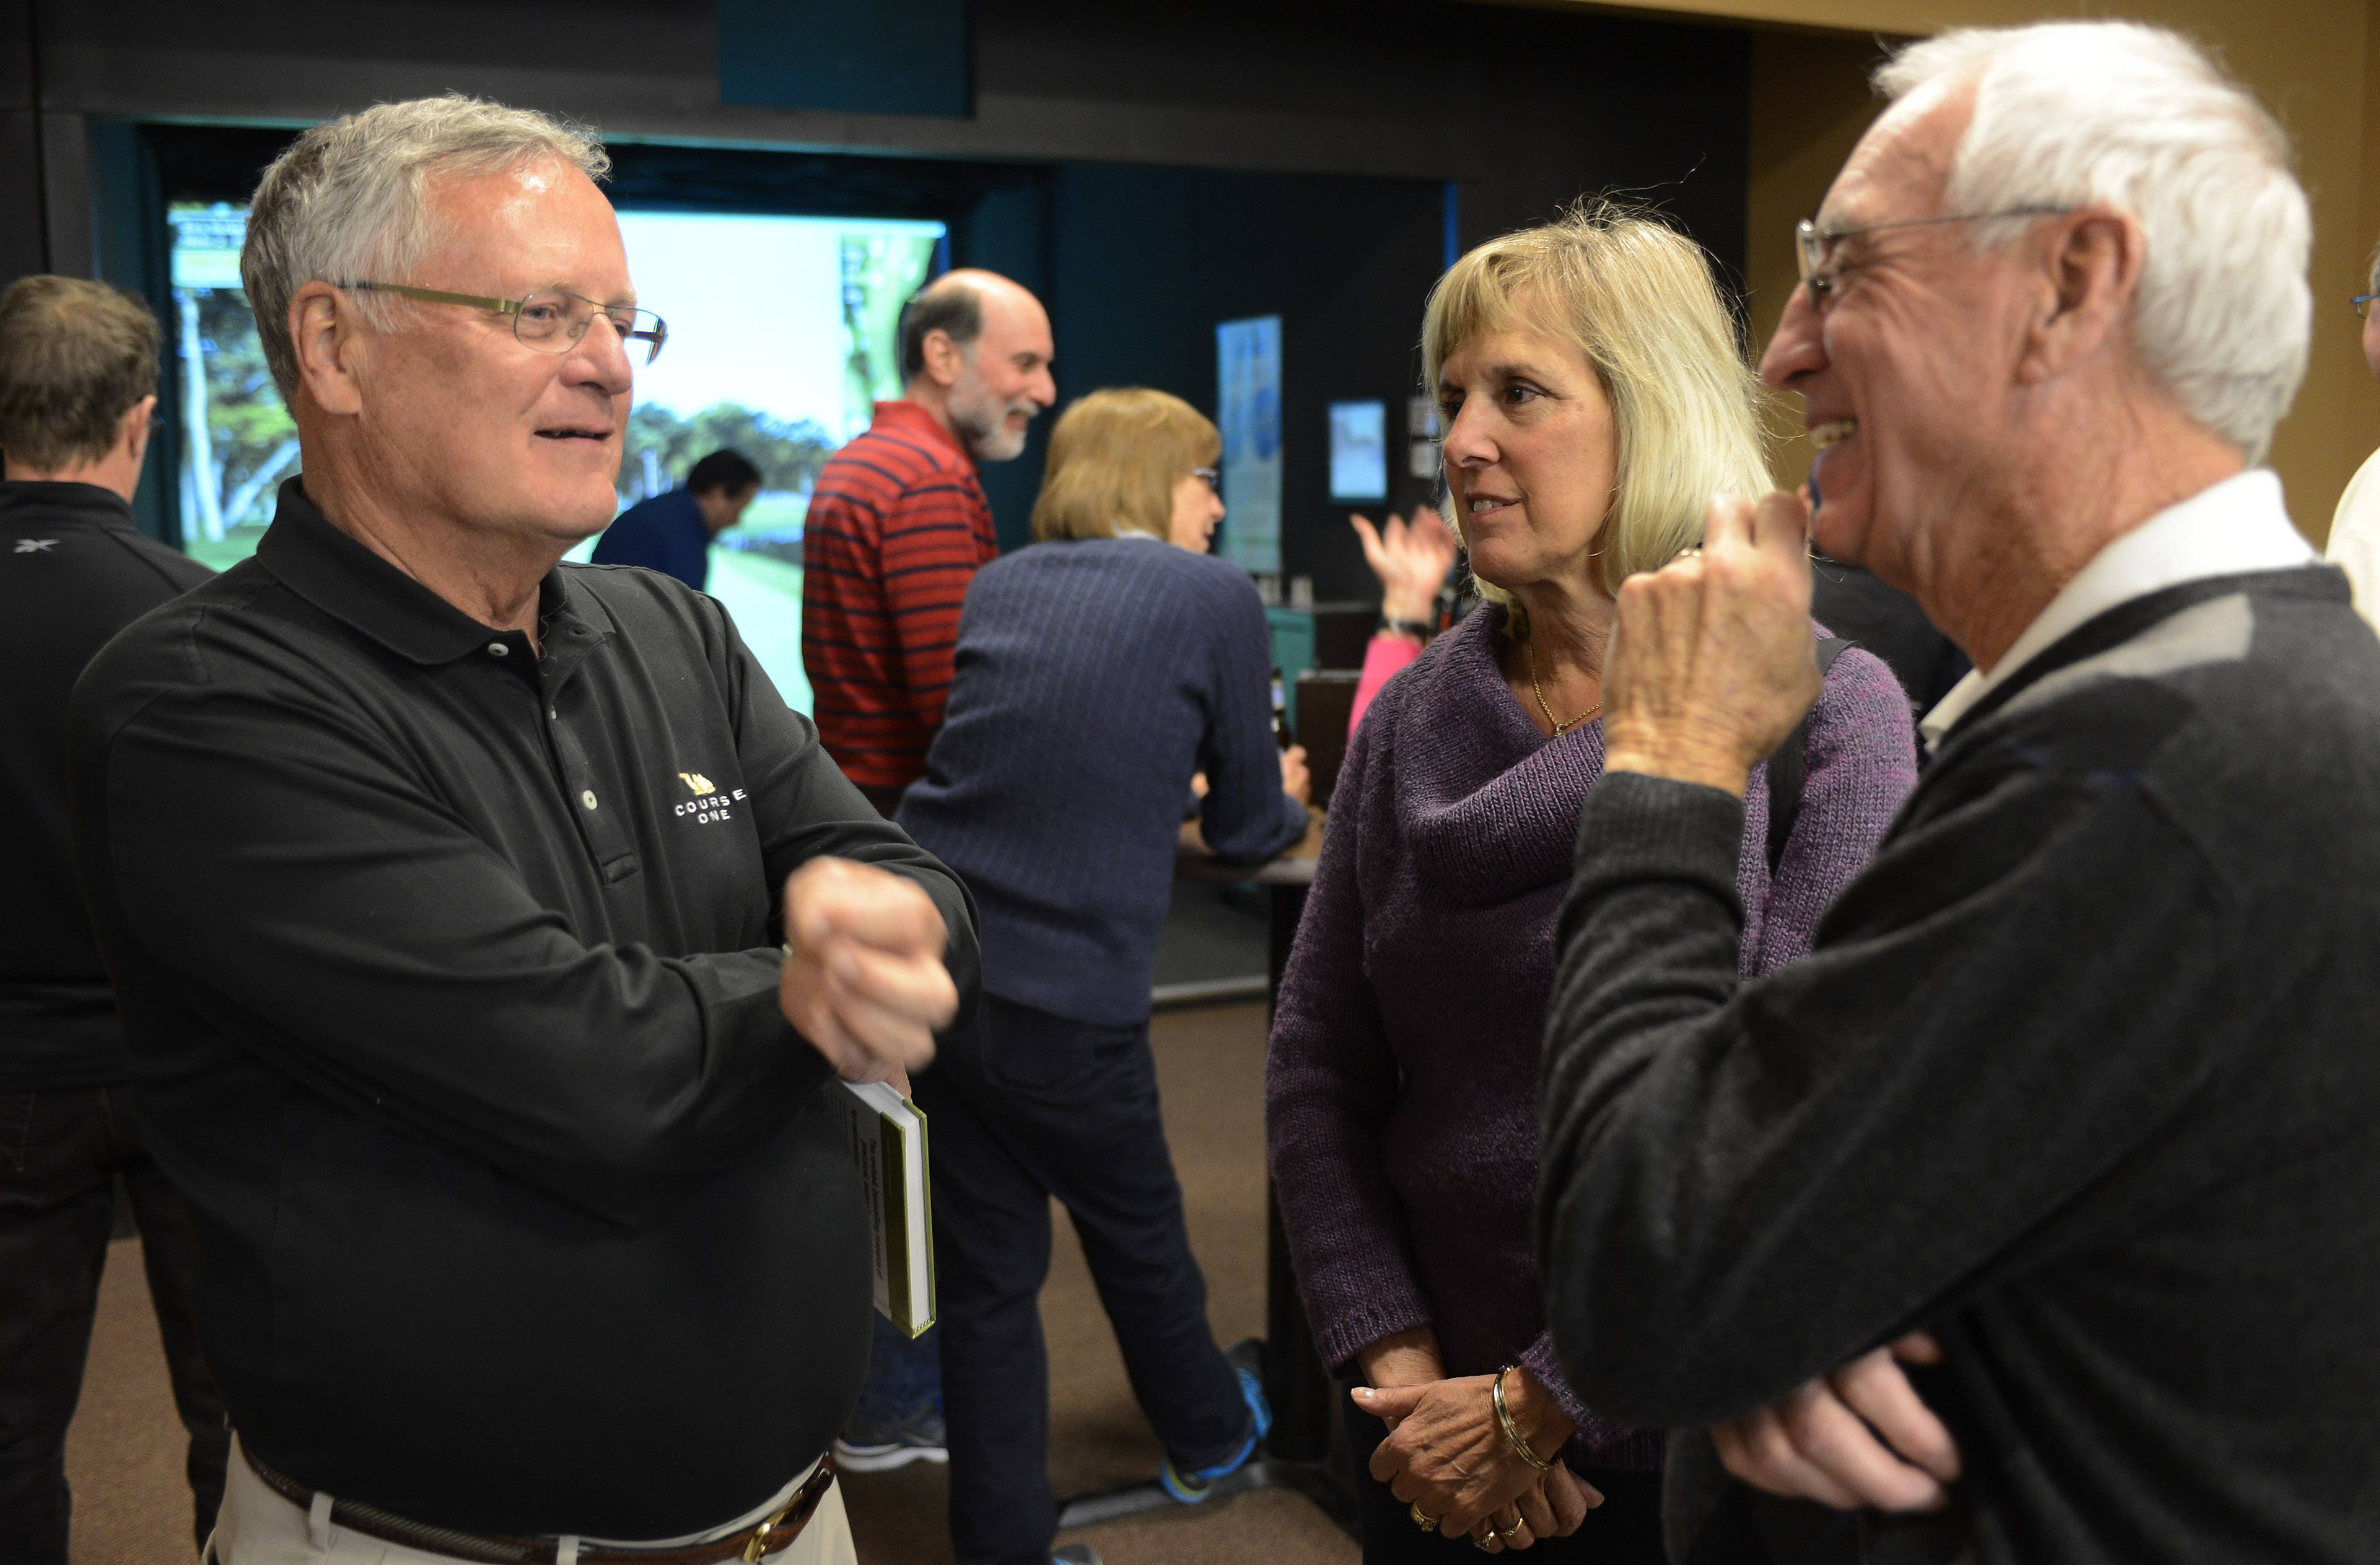 Veteran golf writer Len Ziehm, left, chats with Mary and Mike Bavier of Barrington during an event for Daily Herald subscribers Wednesday at Golf Nation in Palatine.